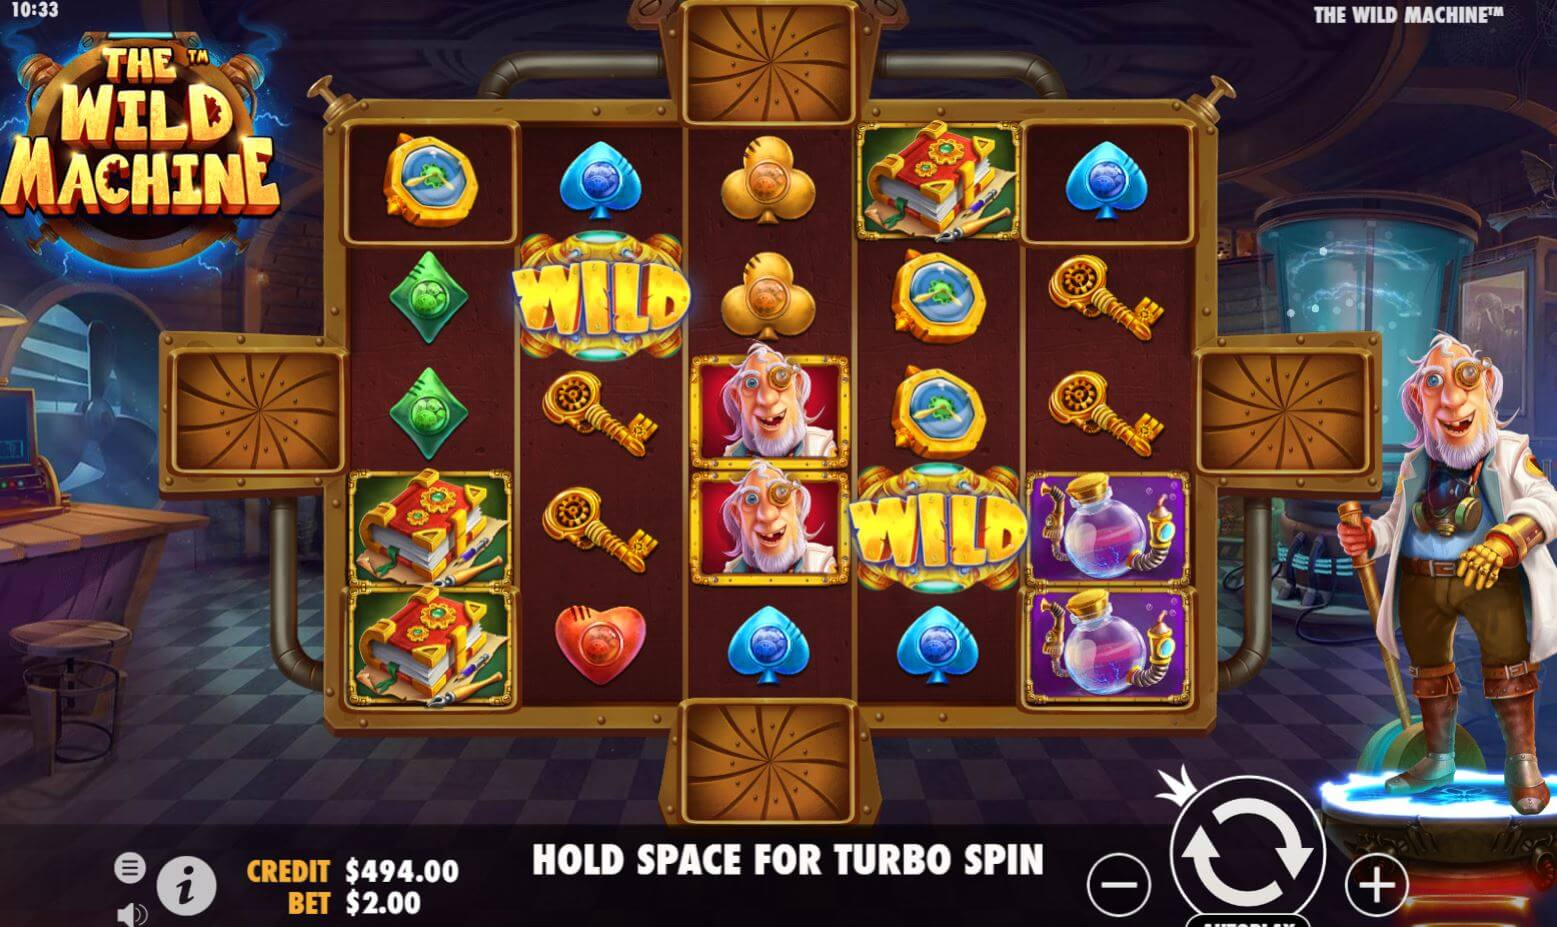 The Wild Machine Slot Gameplay